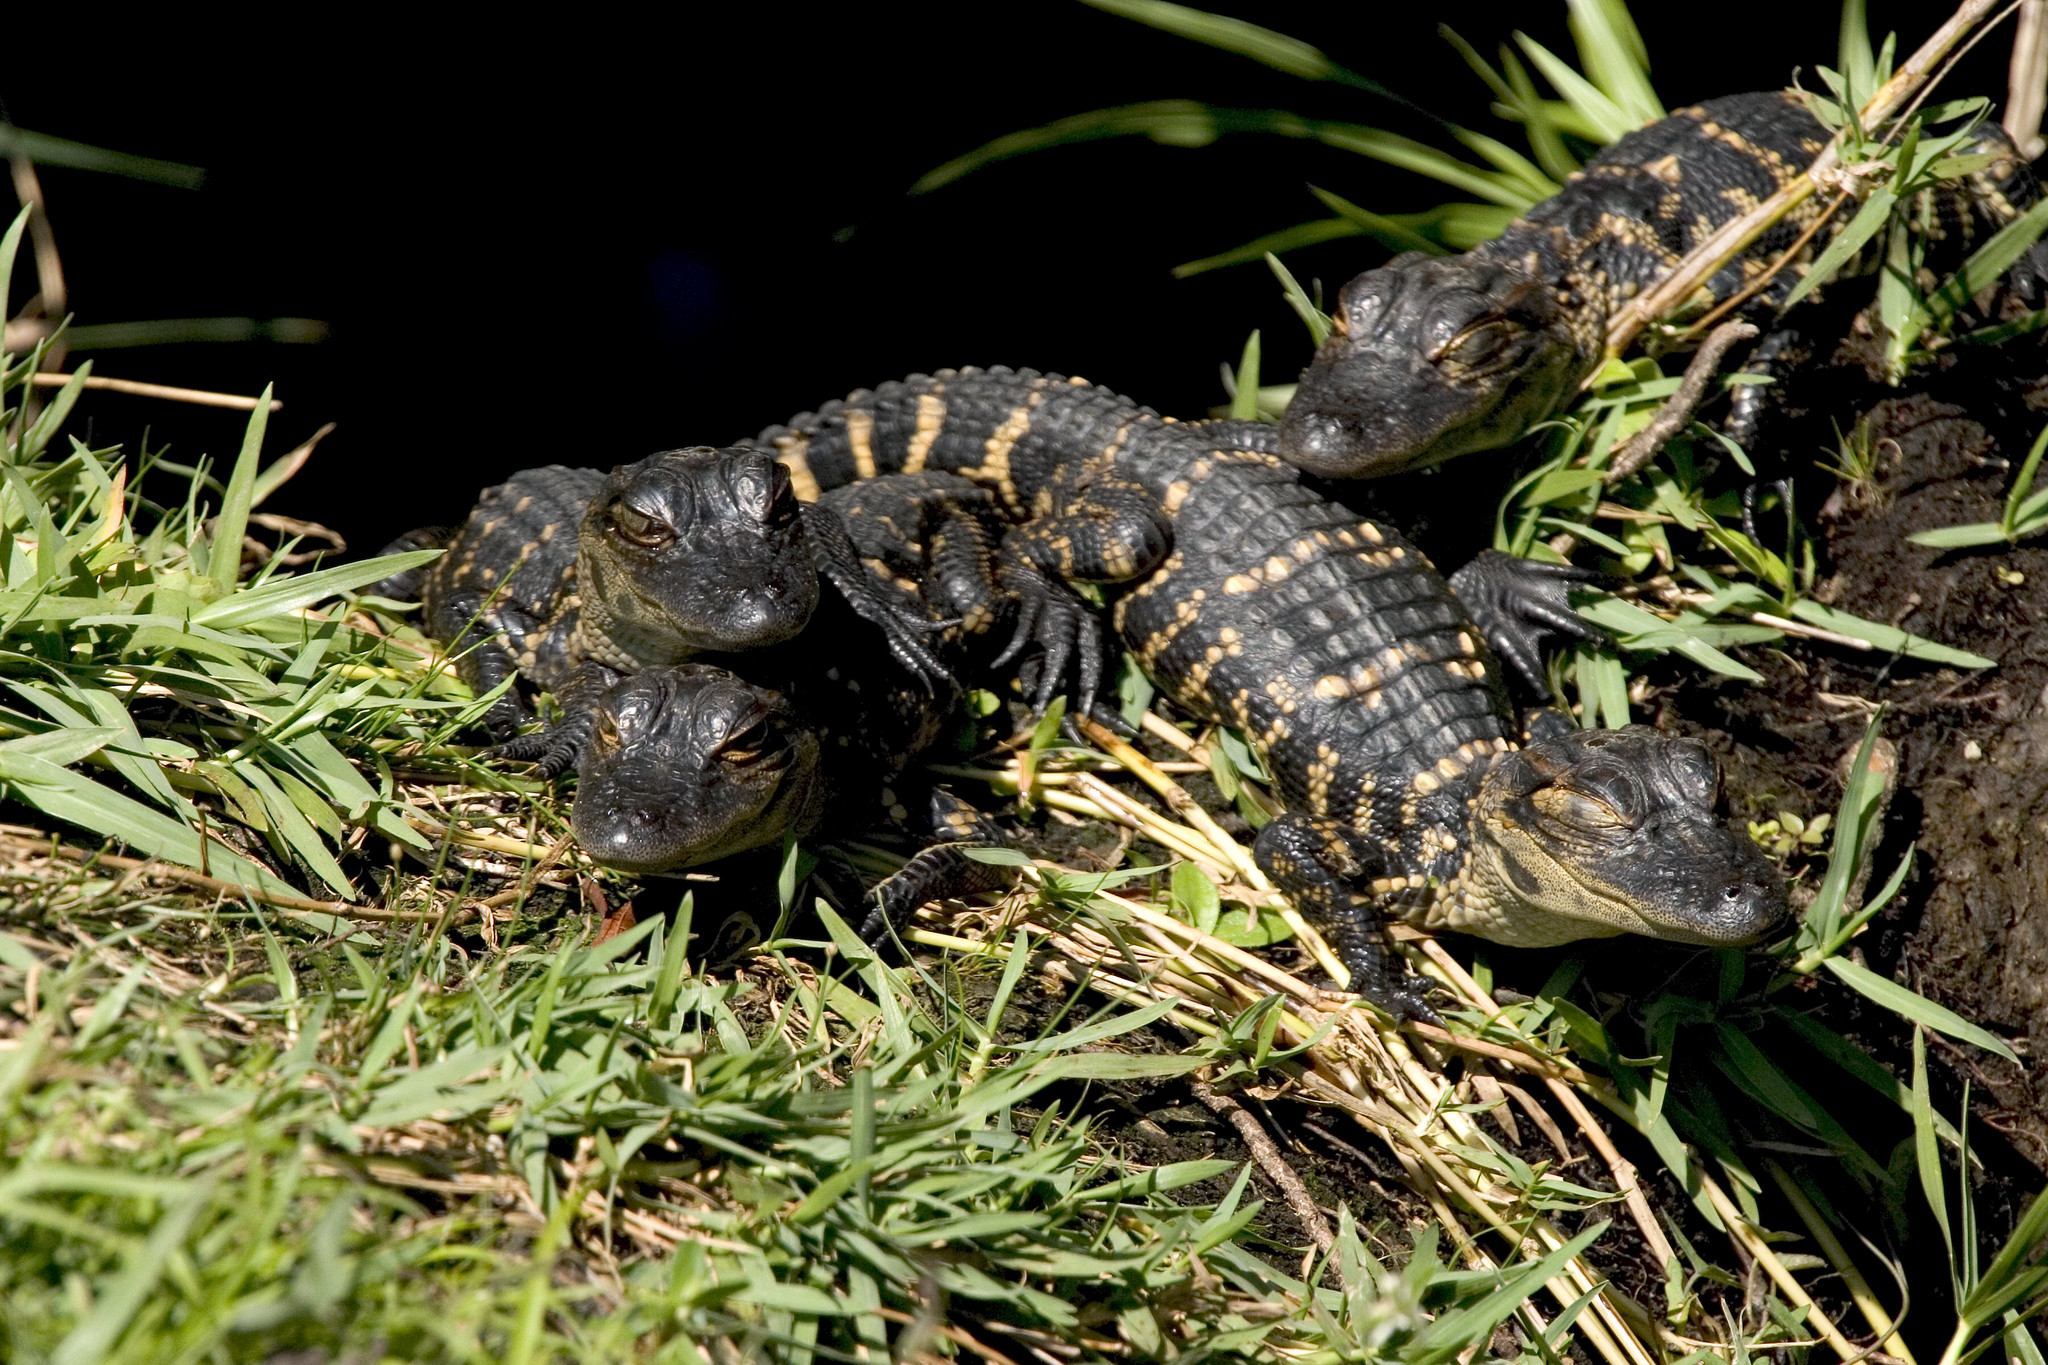 Baby alligators at Shark Valley in Florida.